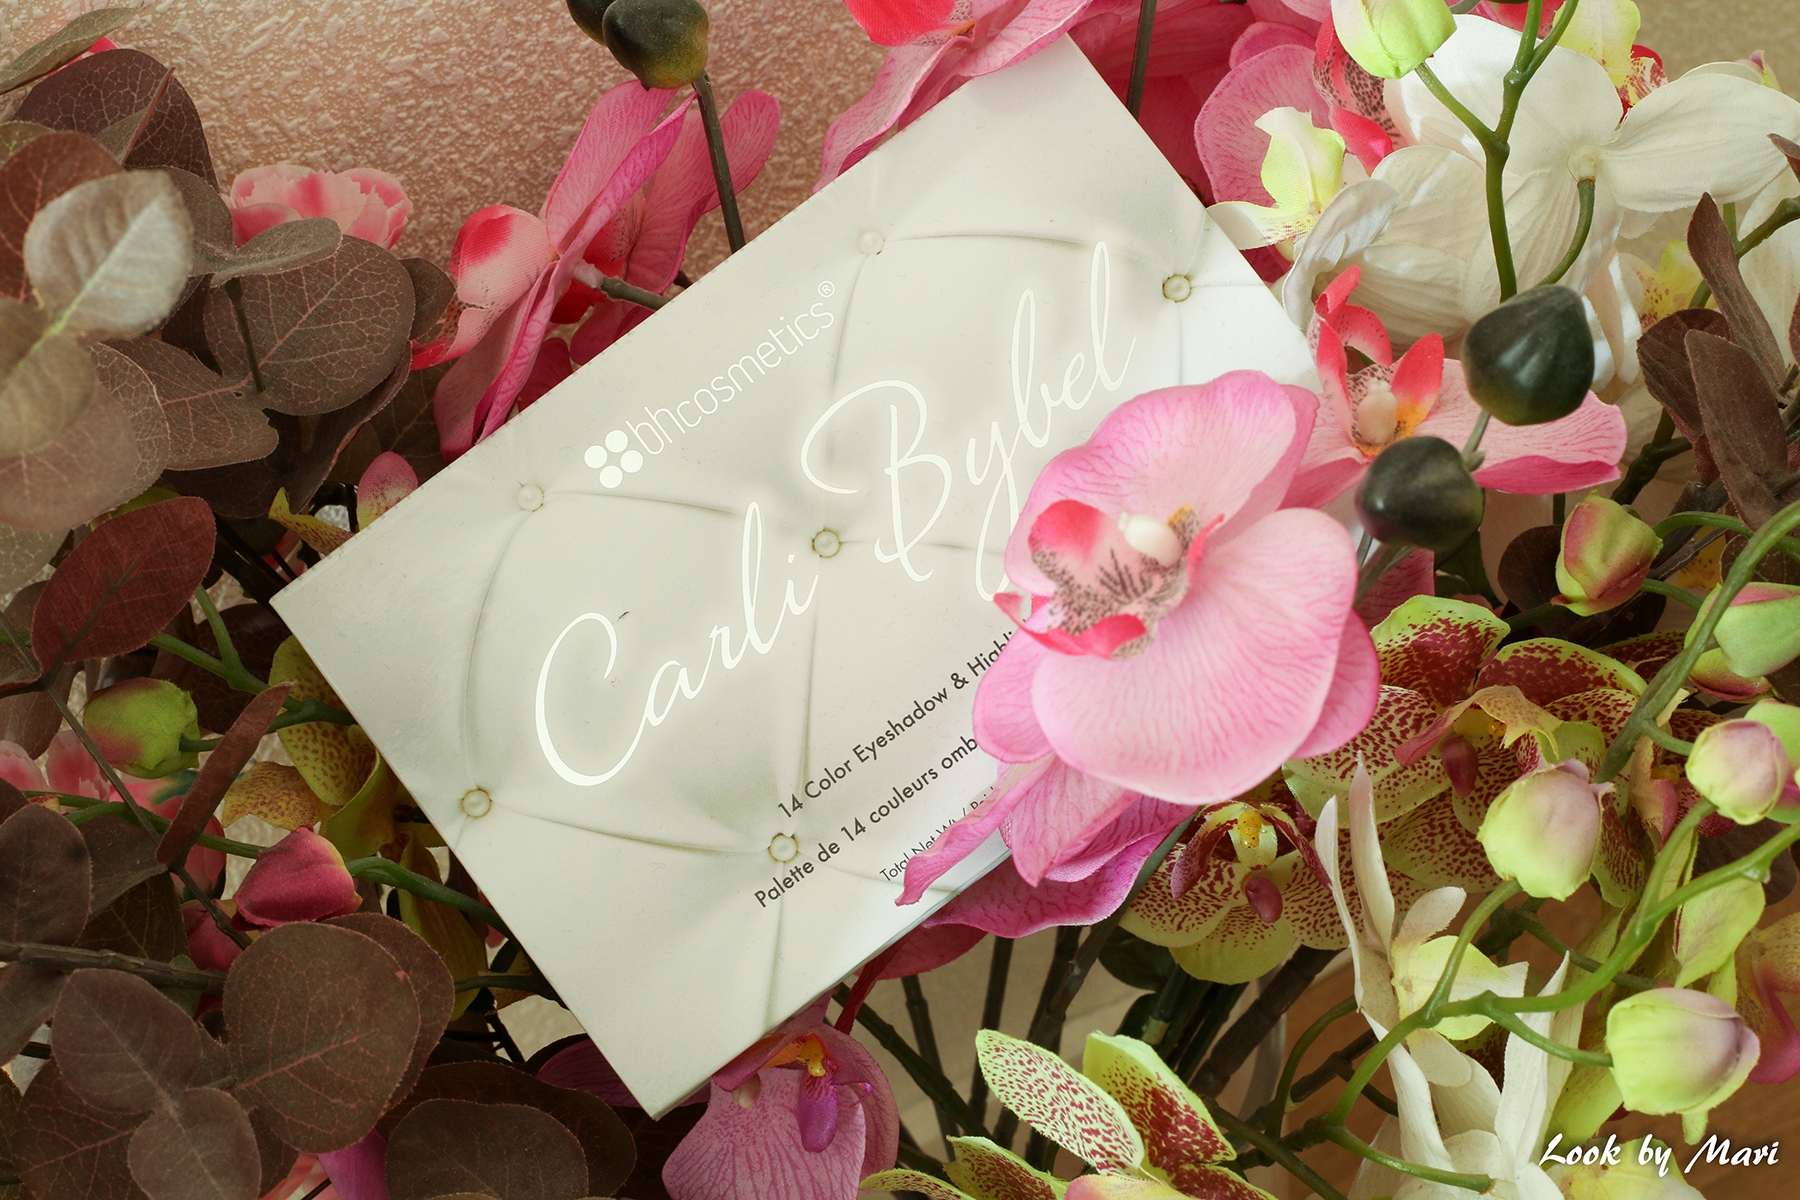 9 bh cosmetics x carli bybel 14 colors eyeshadow and highlighting palette review beautybay